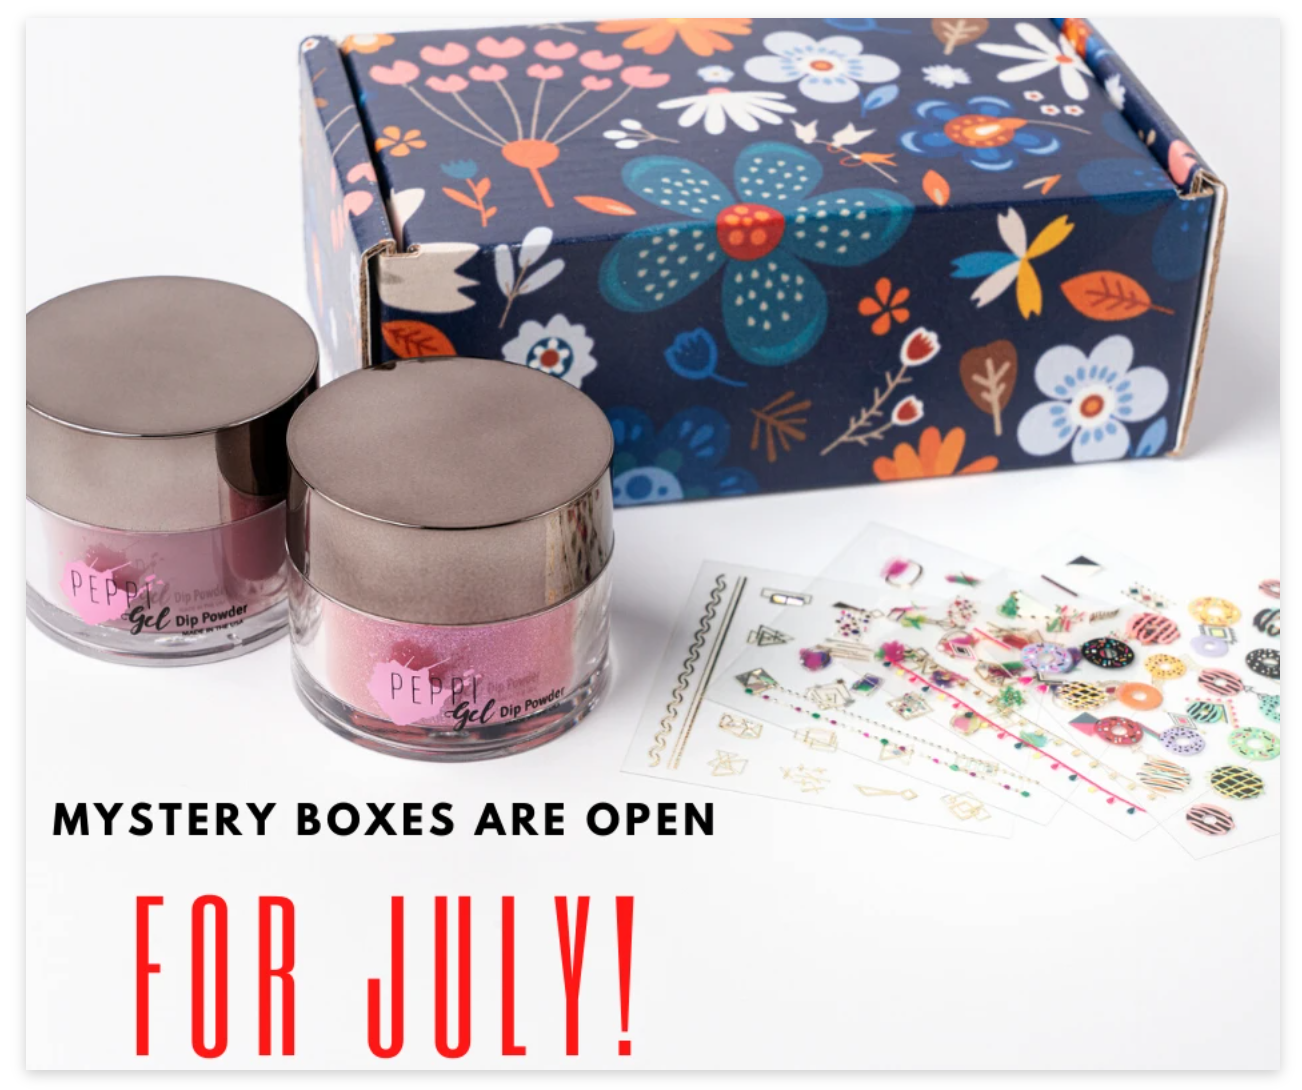 colorful mystery box with decorative paper and powder samples in little jars